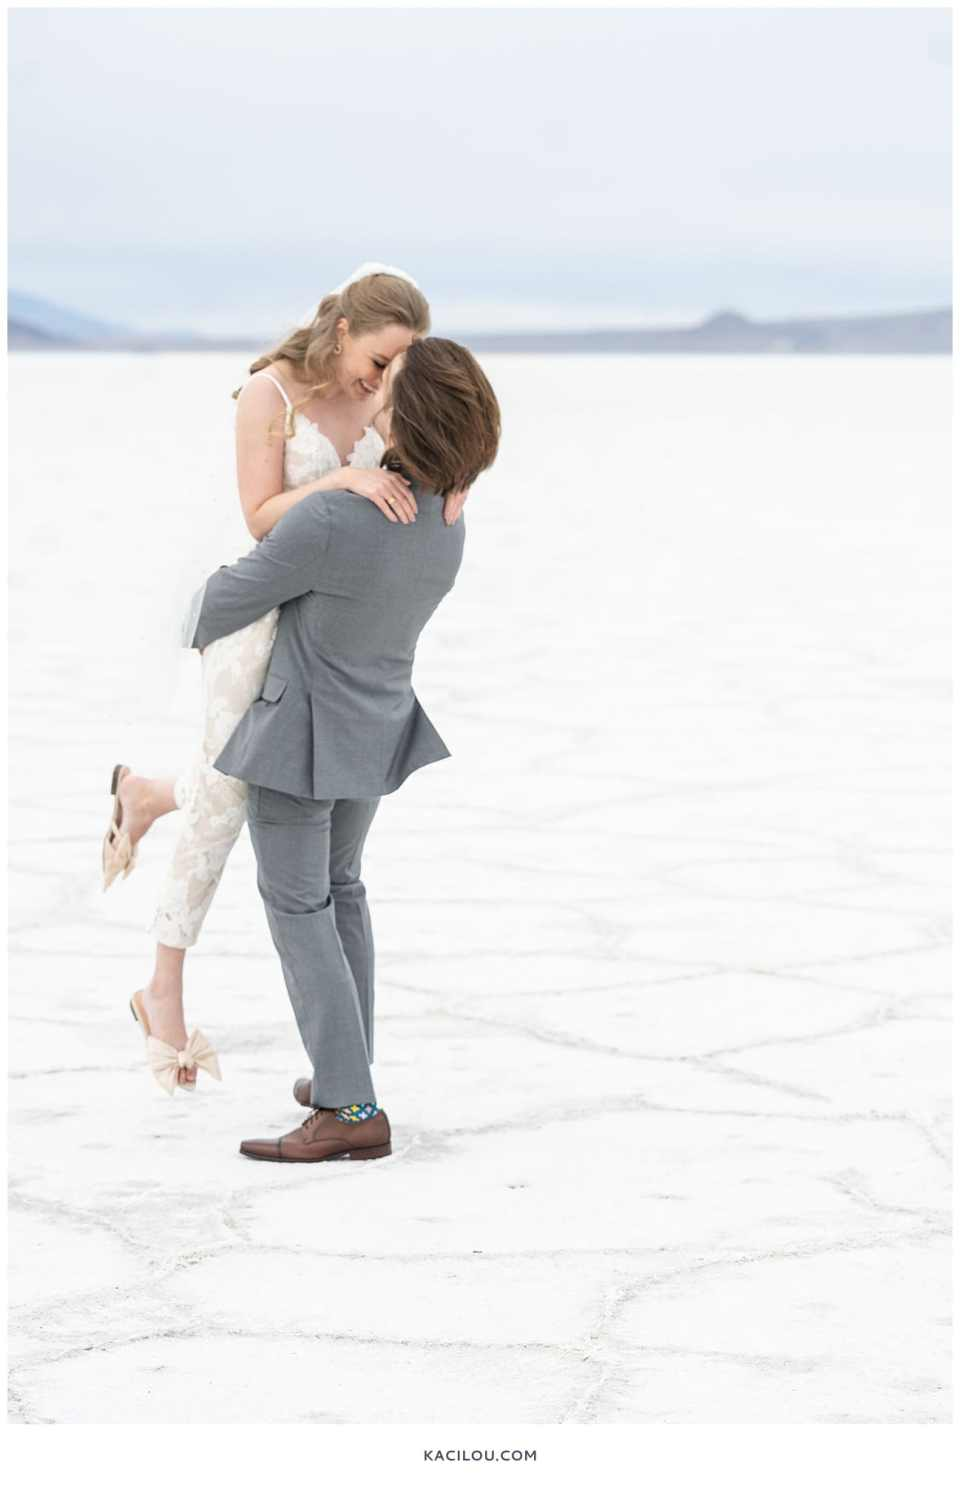 utah elopement photographer kaci lou photography bonneville salt flats sneak peek photos for kylie and max-21.jpg